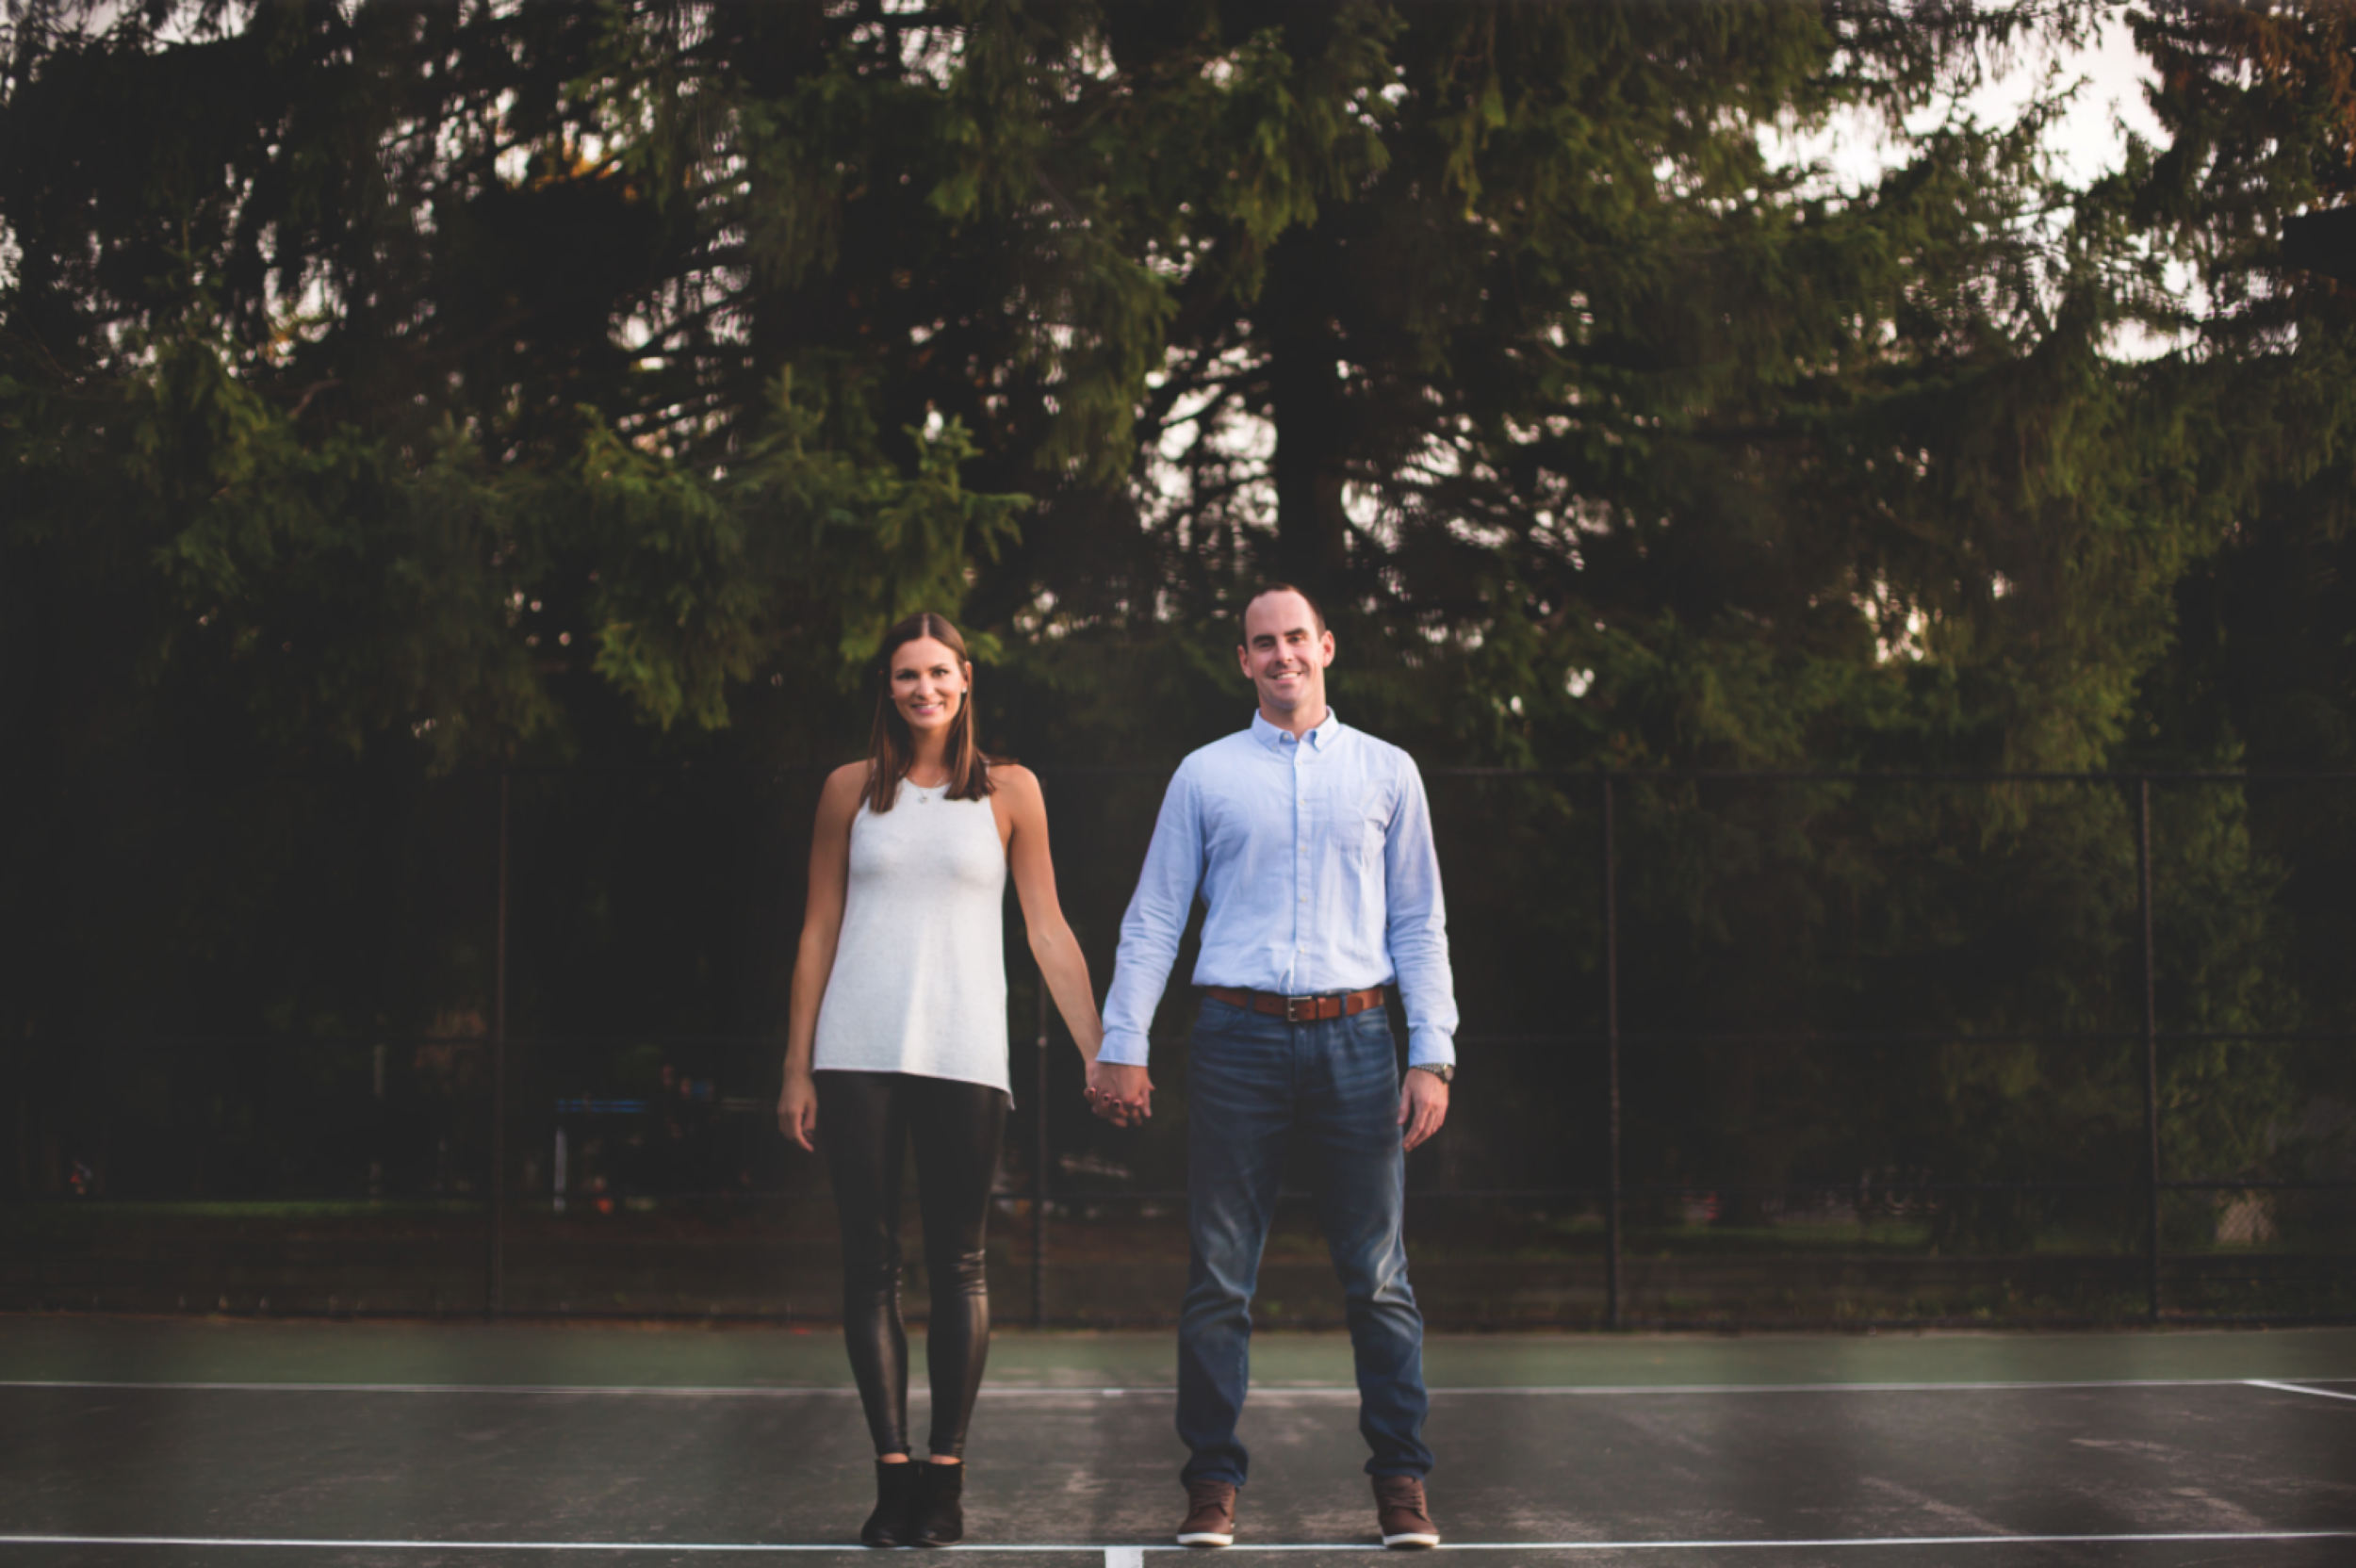 Engagement-Photos-Guelph-Park-Photographer-Wedding-Hamilton-GTA-Niagara-Oakville-Guelph-Tennis-Court-Basketball-Modern-Moments-by-Lauren-Engaged-Photography-Photo-Image-8.png